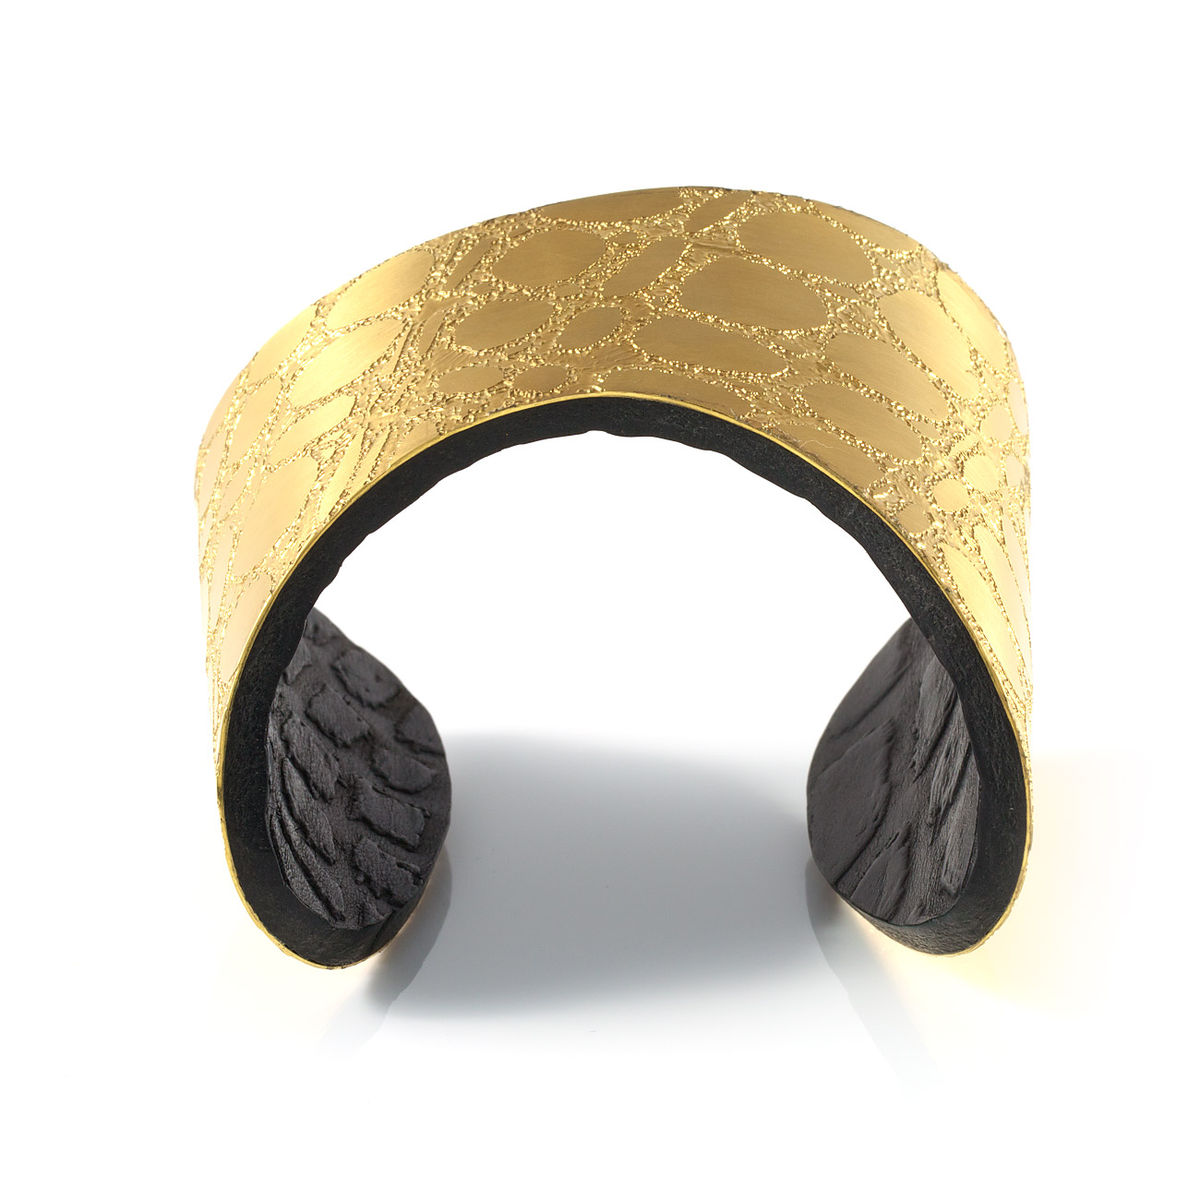 Gold & Black Etched Metal and Leather 'Skin' Cuff - Sara Gunn - product images  of